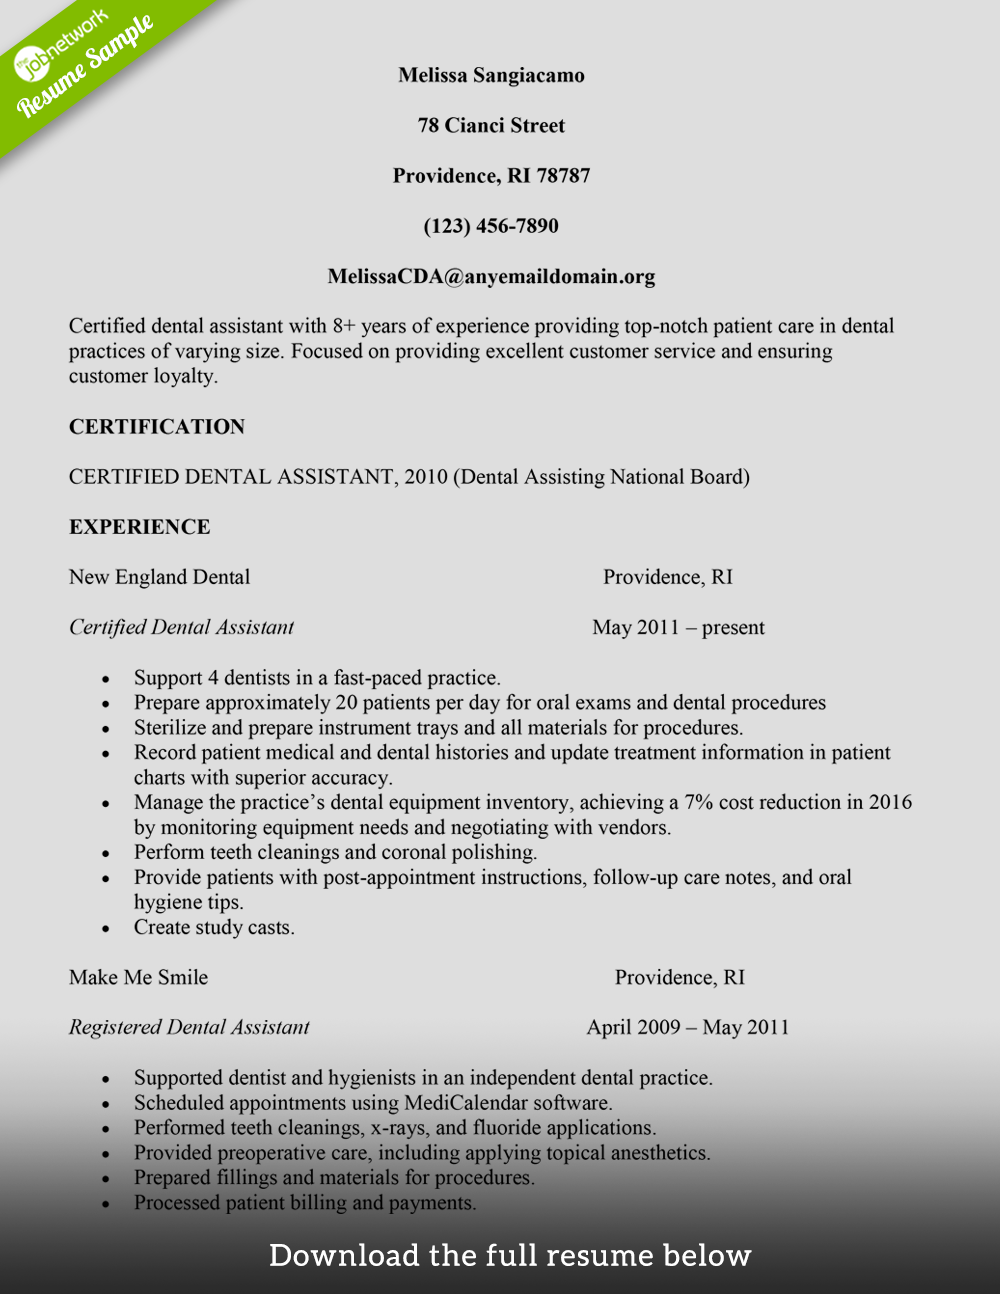 Example of dental assistant resume